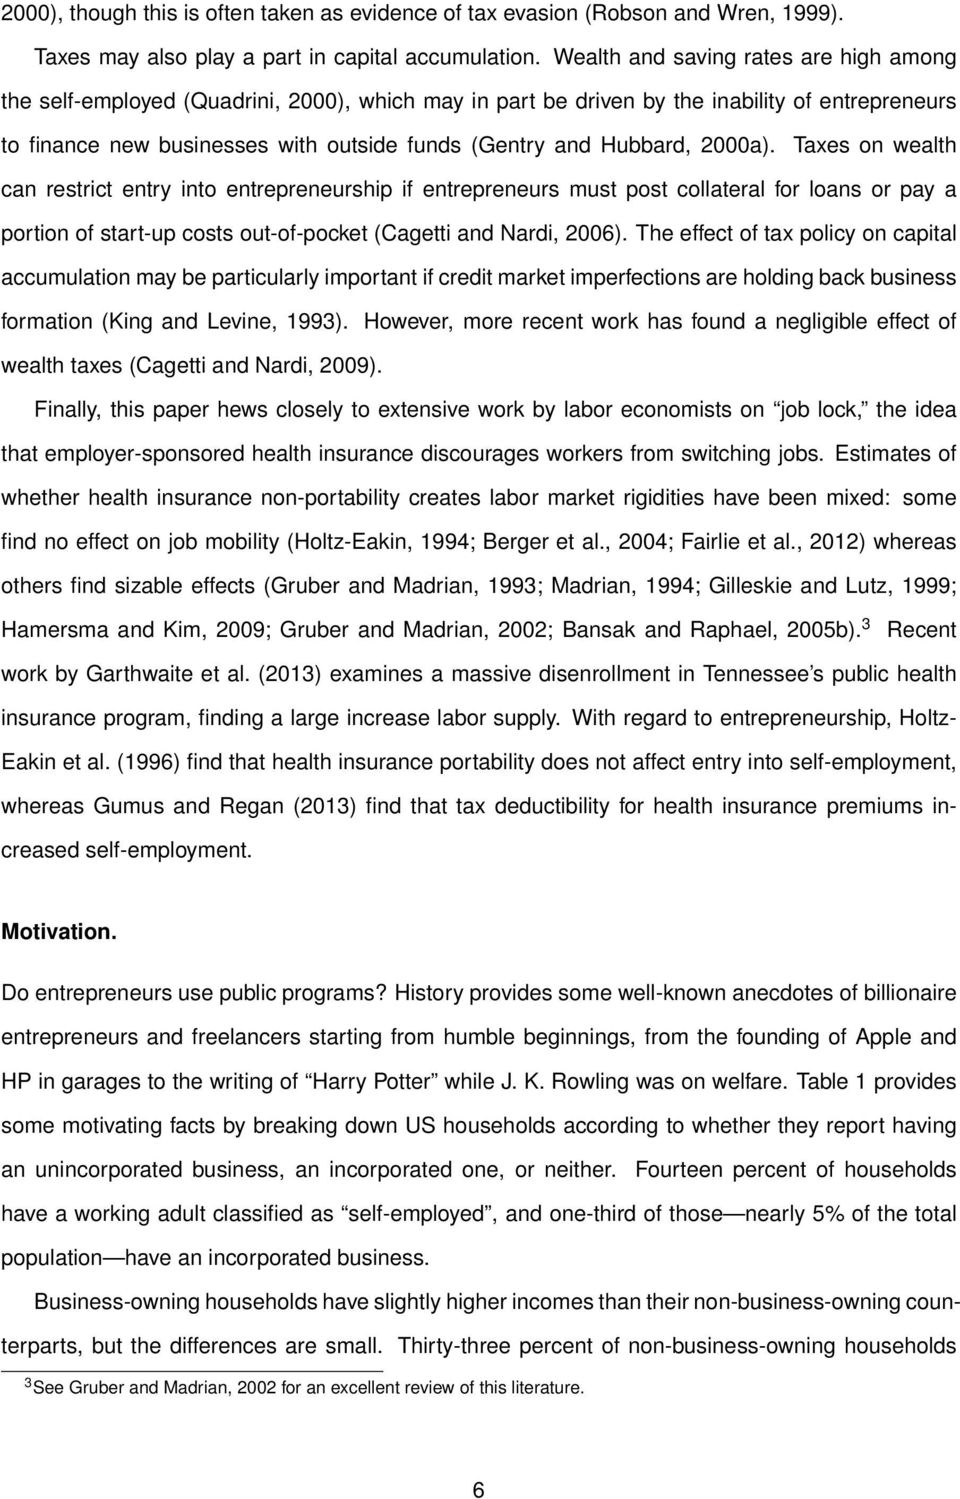 Hubbard, 2000a). Taxes on wealth can restrict entry into entrepreneurship if entrepreneurs must post collateral for loans or pay a portion of start-up costs out-of-pocket (Cagetti and Nardi, 2006).